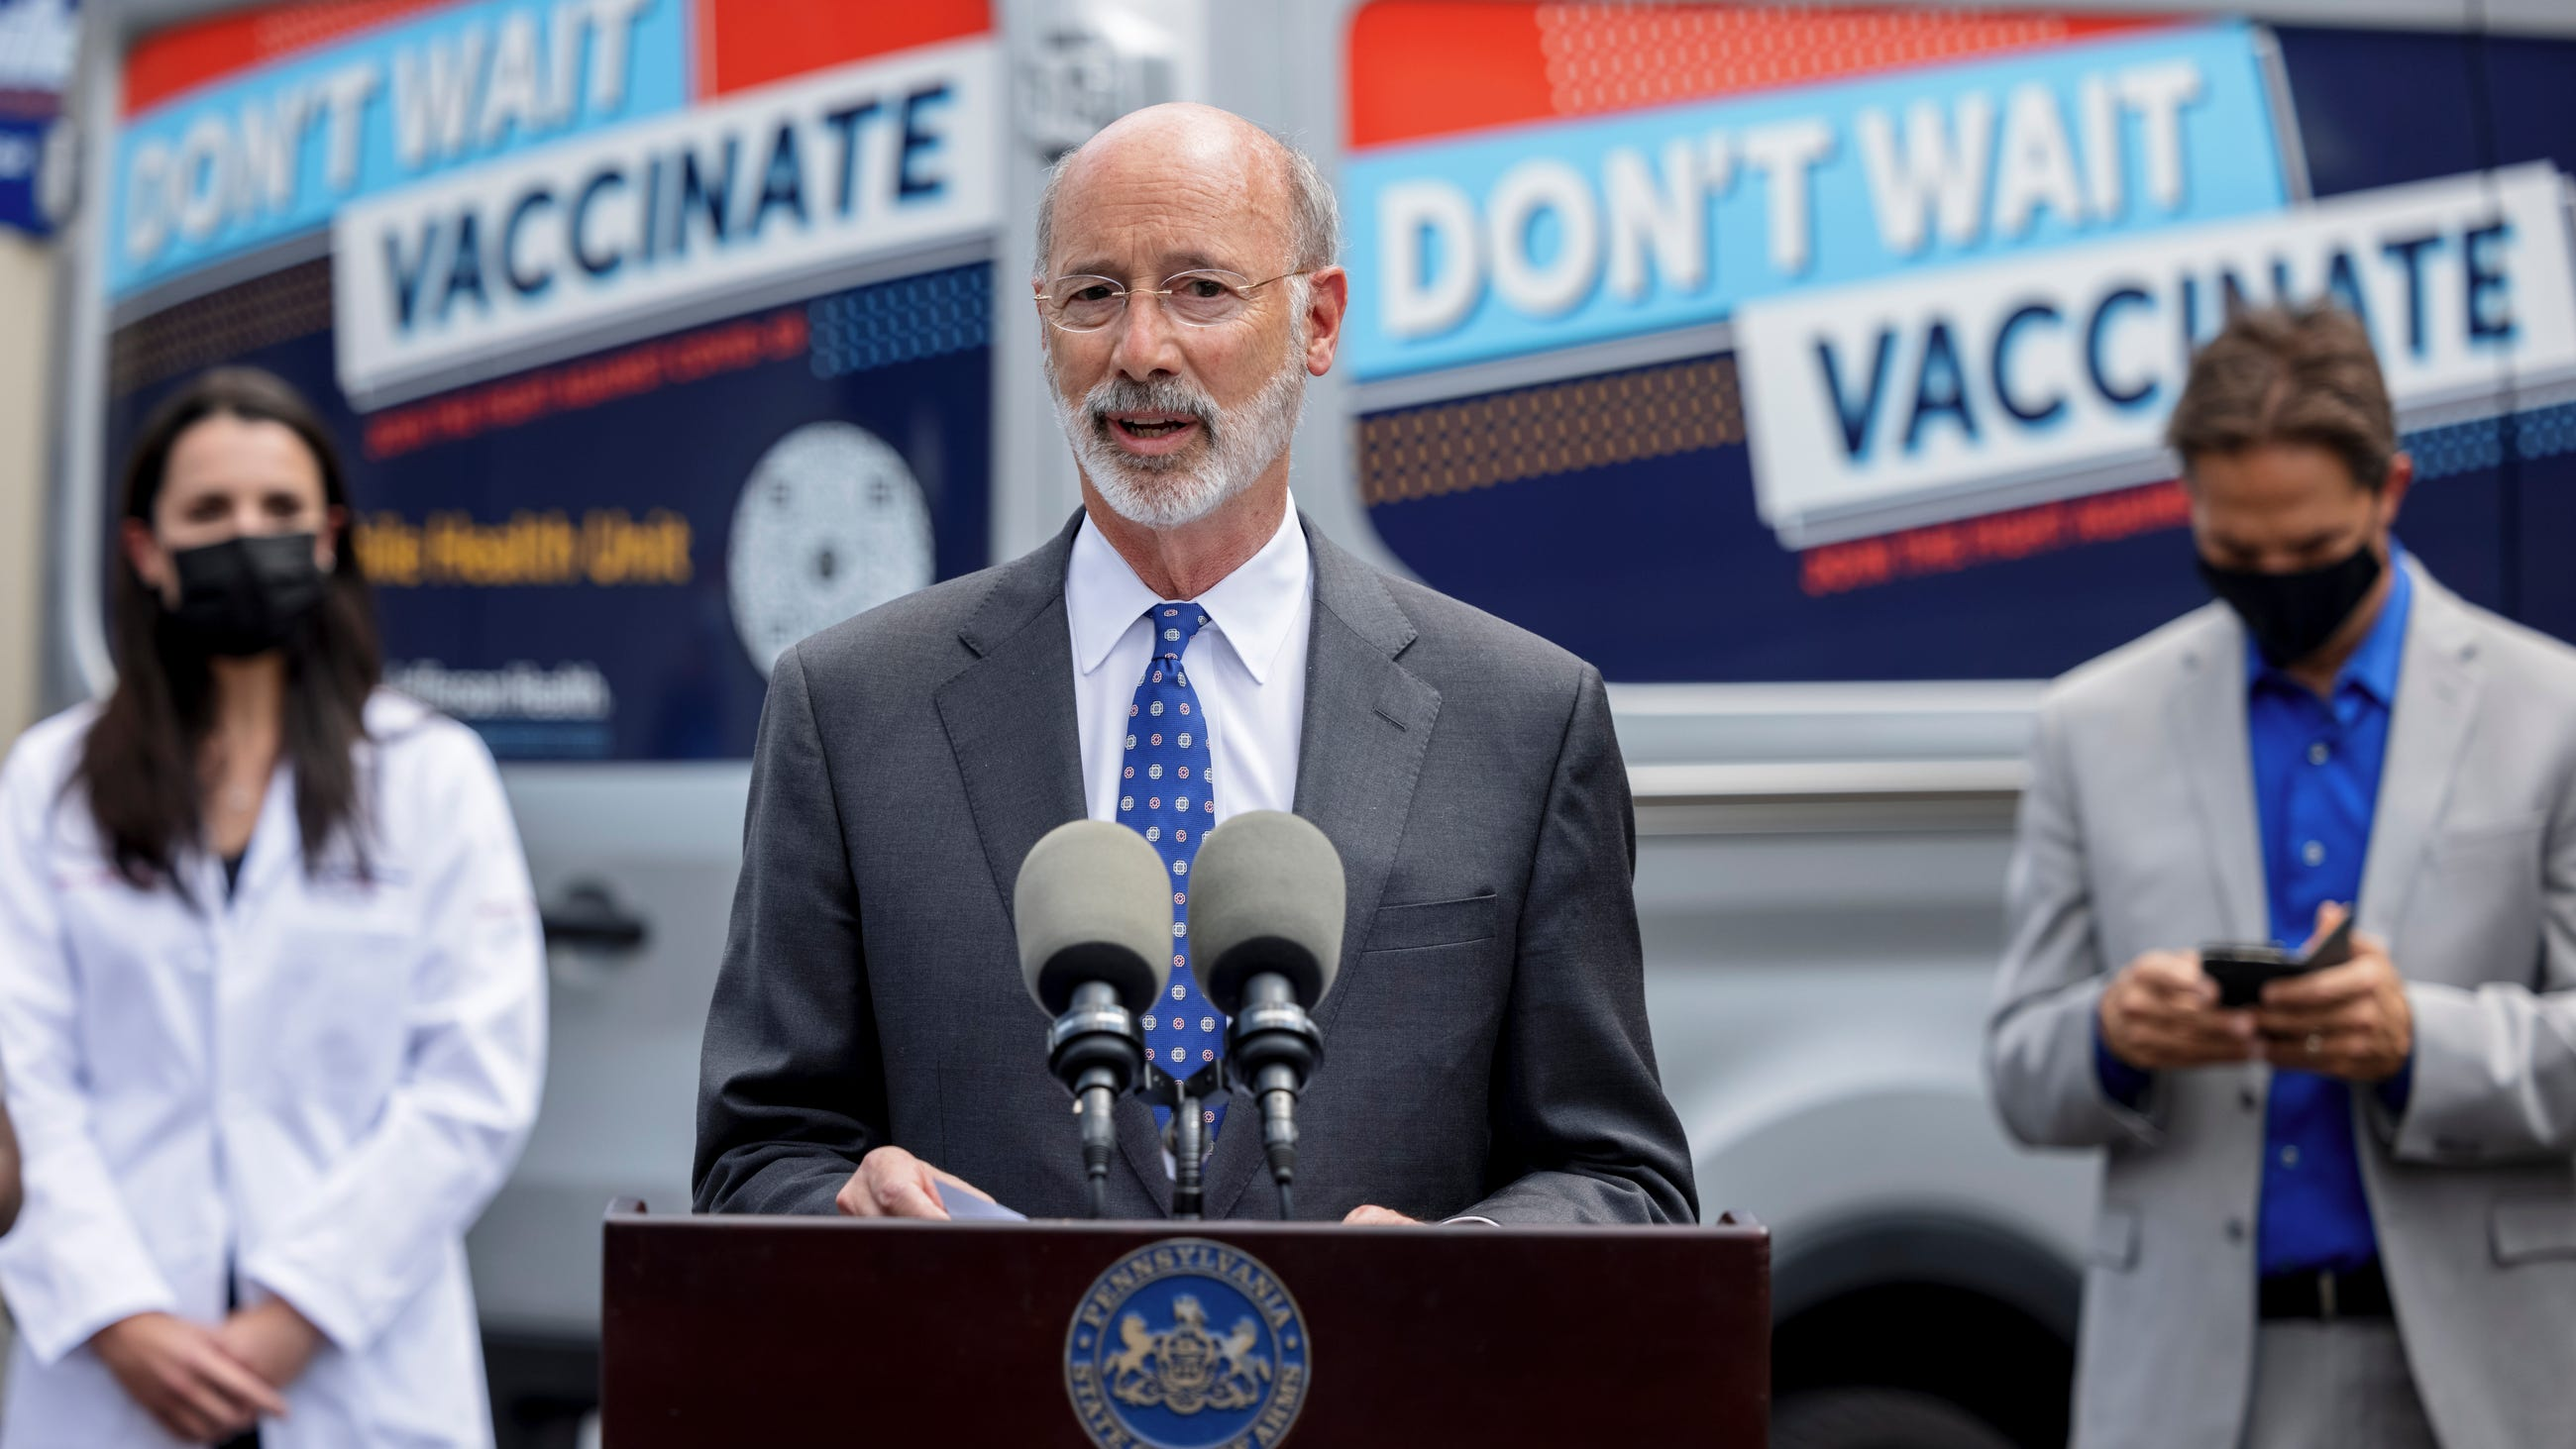 Wolf: State health care workers must be fully vaccinated against COVID-19 or tested weekly